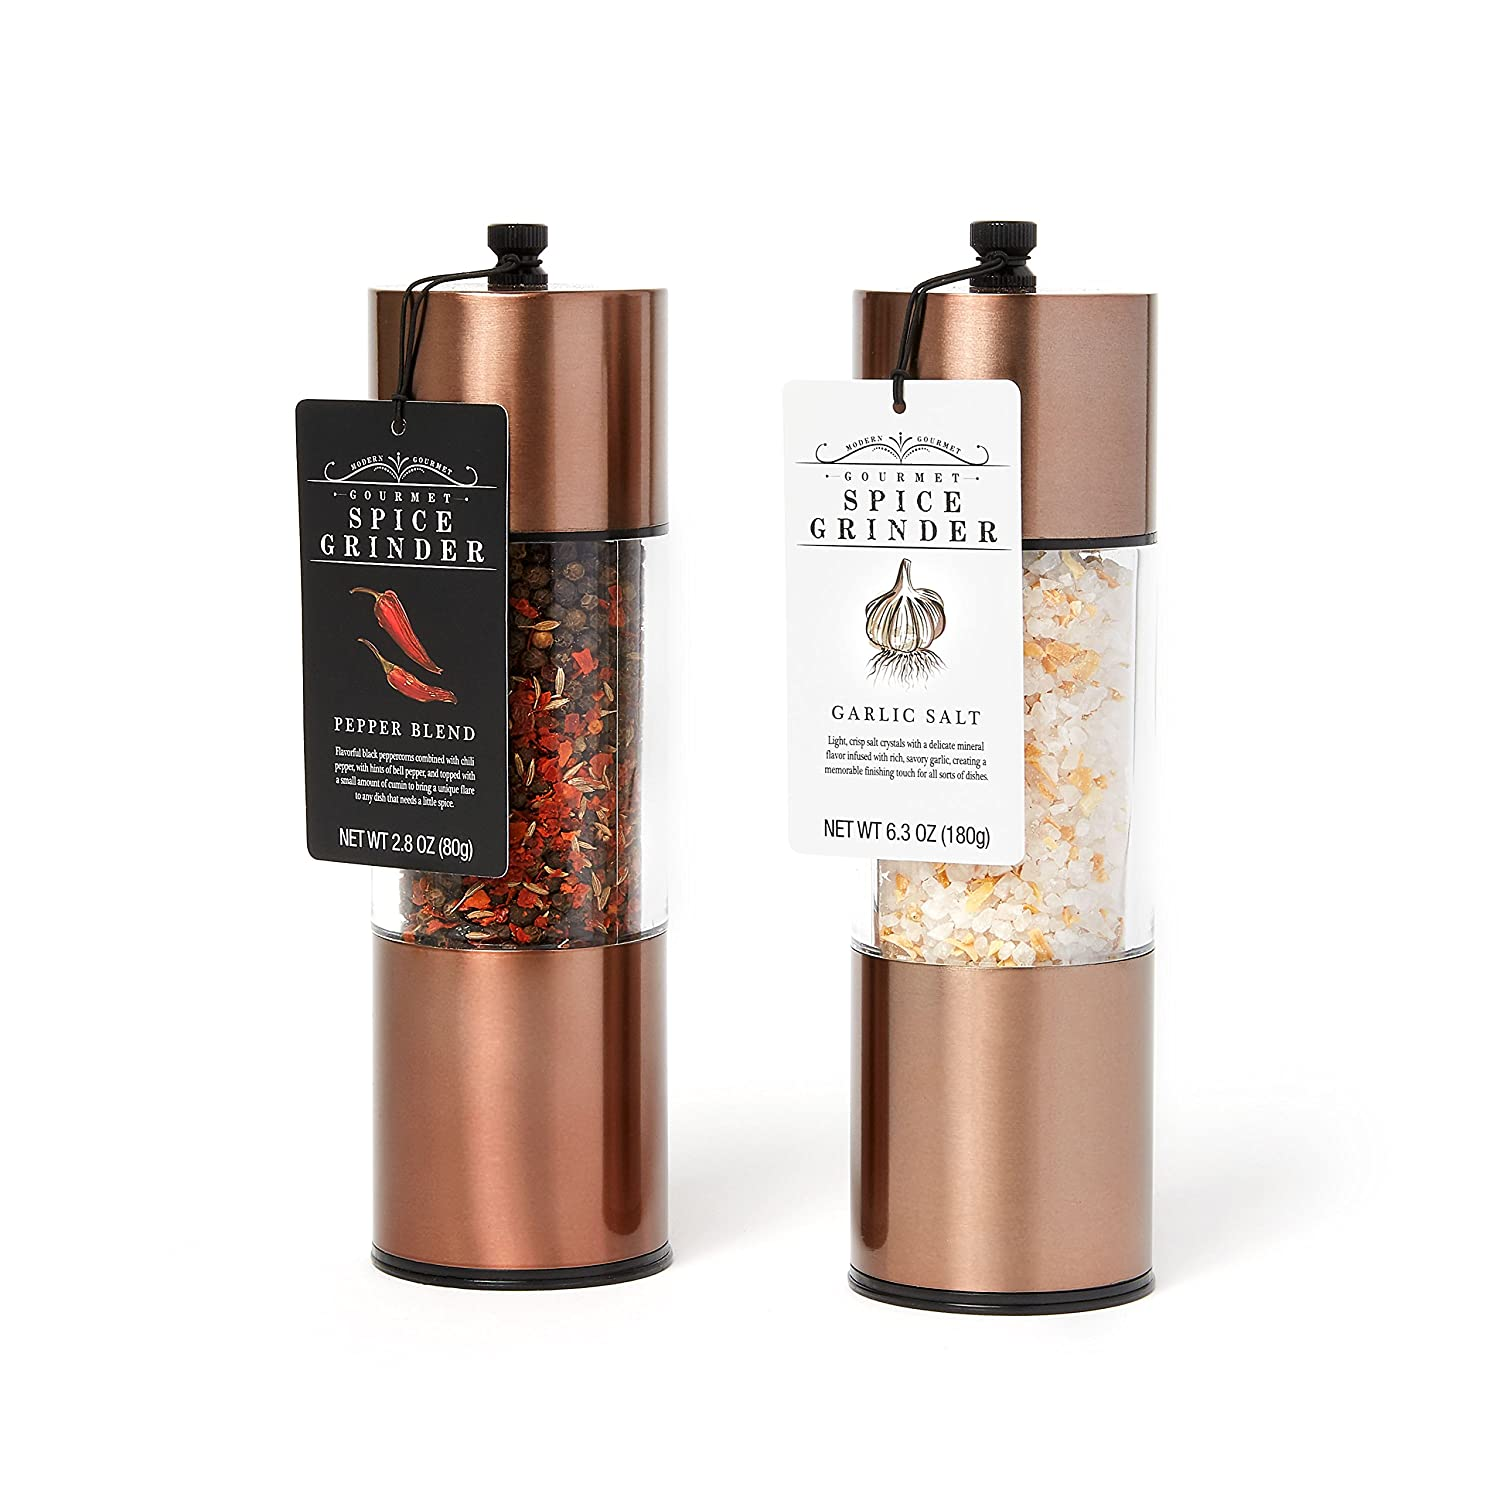 Extra Large Garlic Salt and Pepper Blend Copper Spice Grinders: A Great Copper Kitchen Accessory for the Home Chef who wants the Highest Quality and Best Ingredients Modern Gourmet Foods